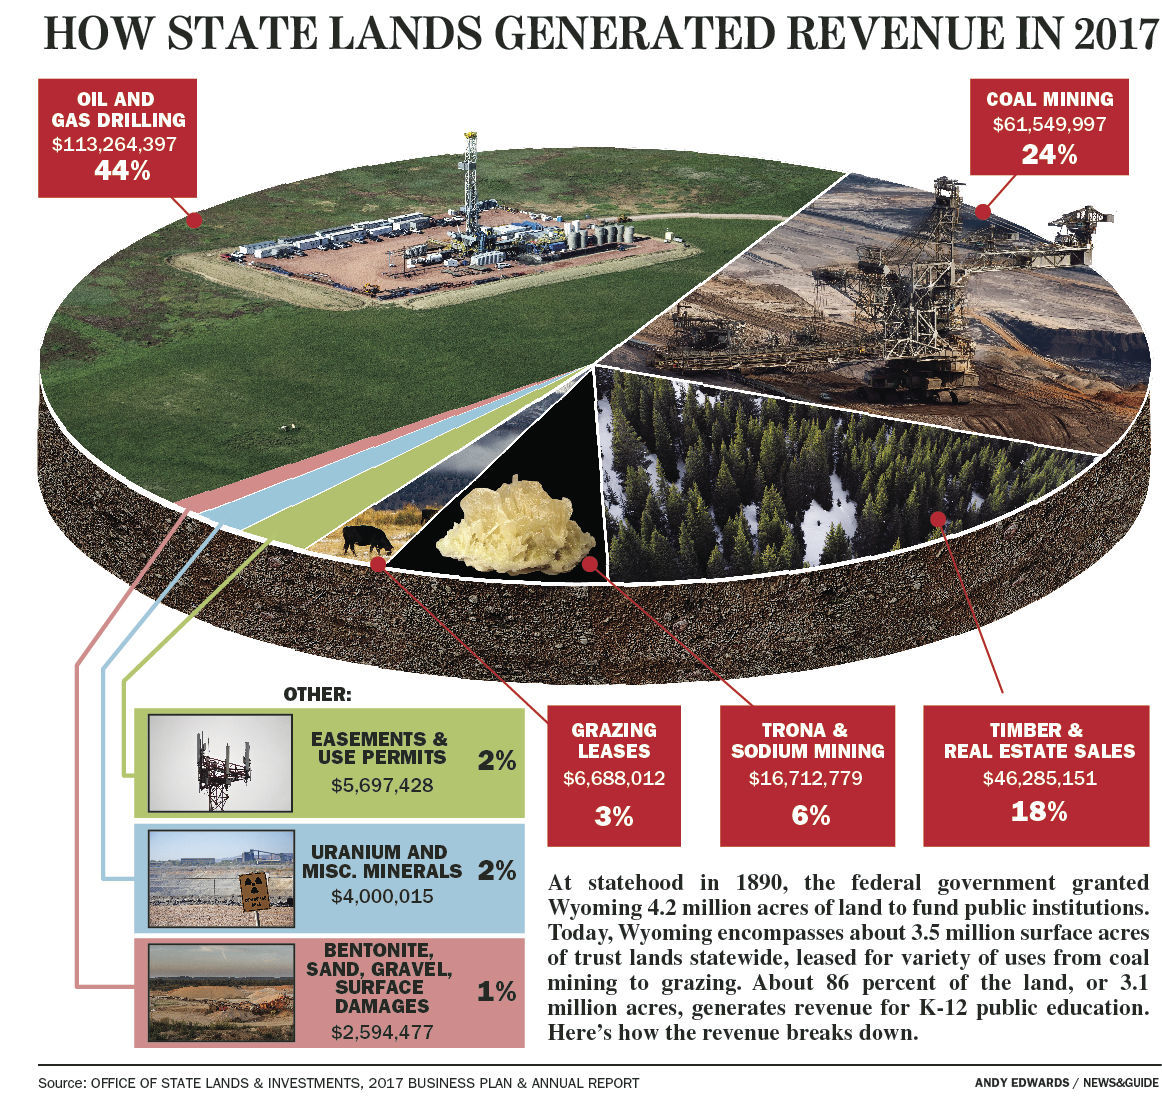 State Trust Lands